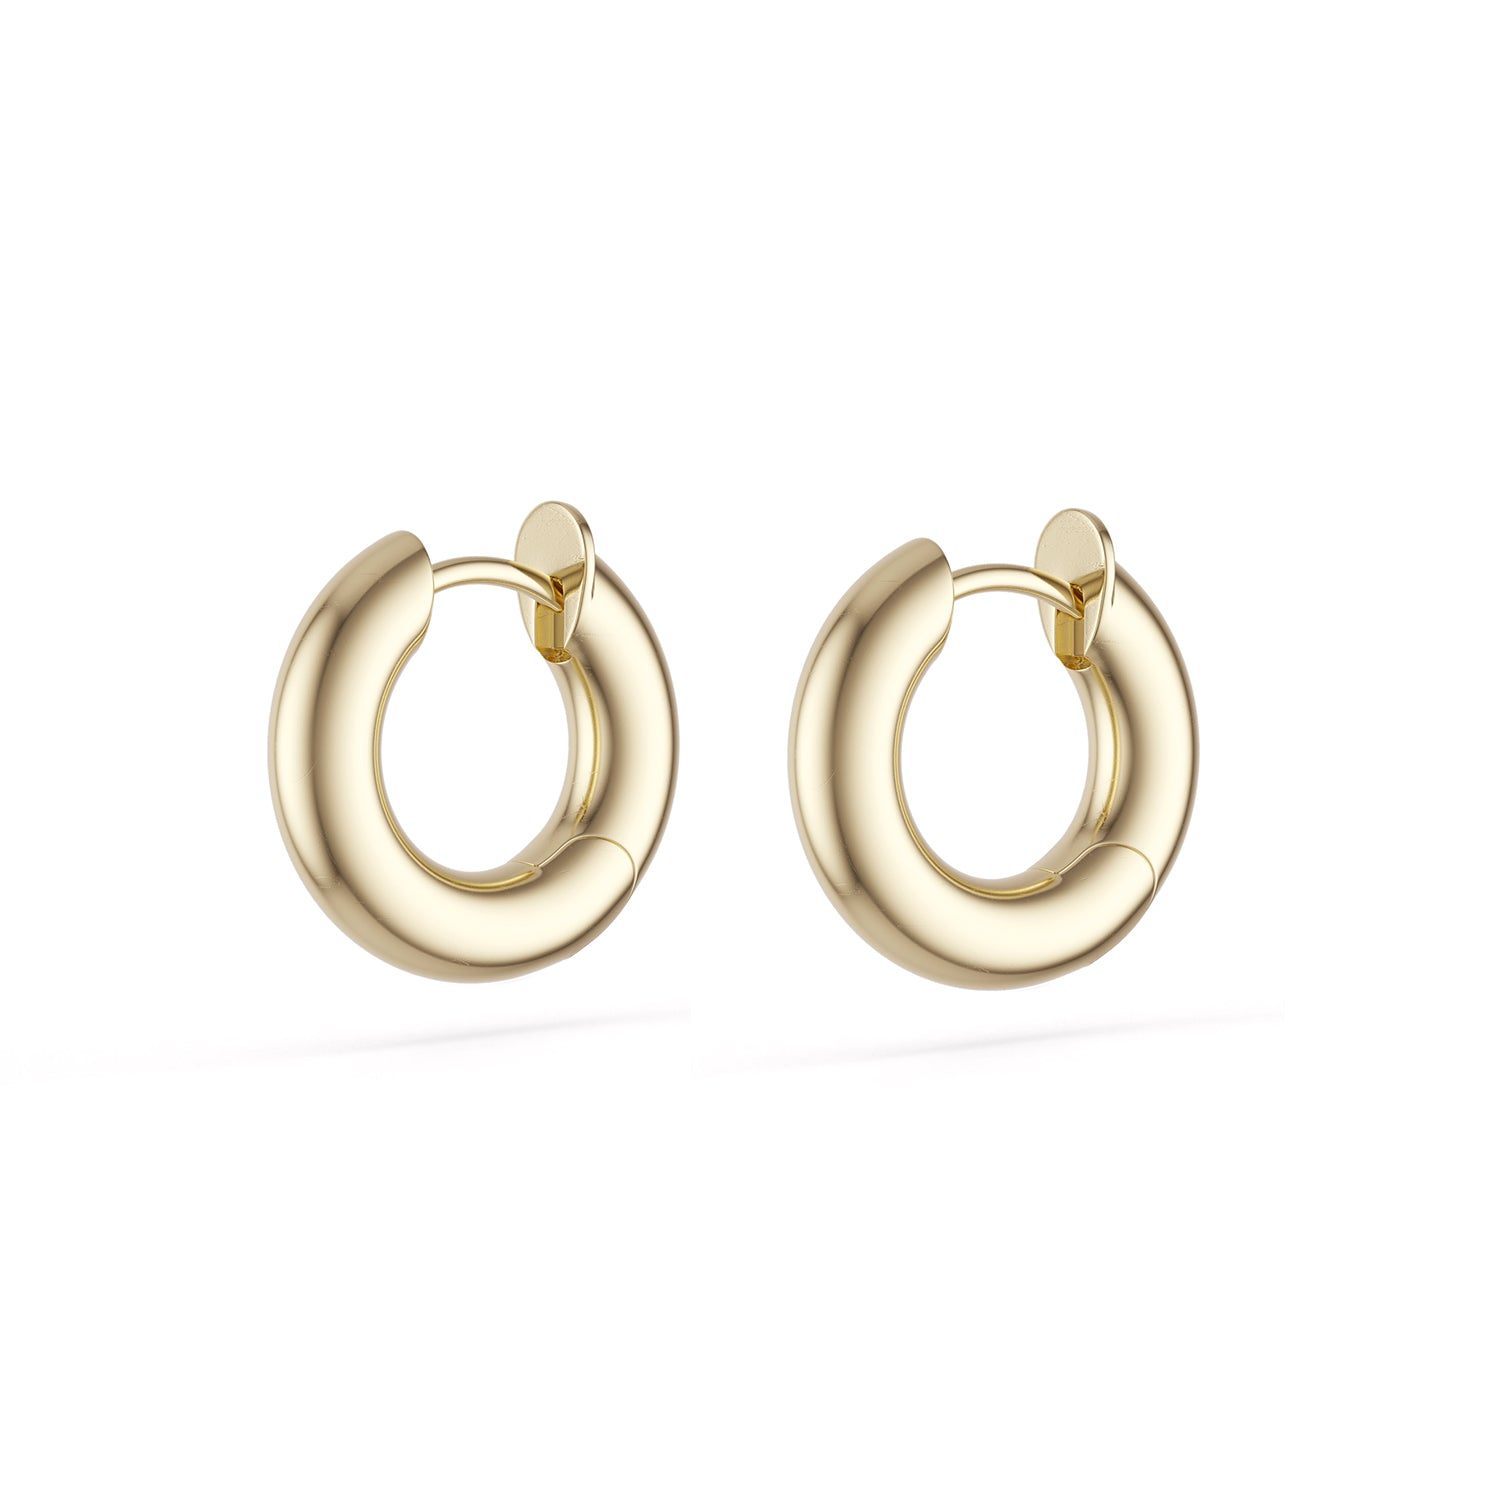 Spinelli Kilcollin Earrings Macro Hoops 18 Karat Yellow Gold Hinged Backs